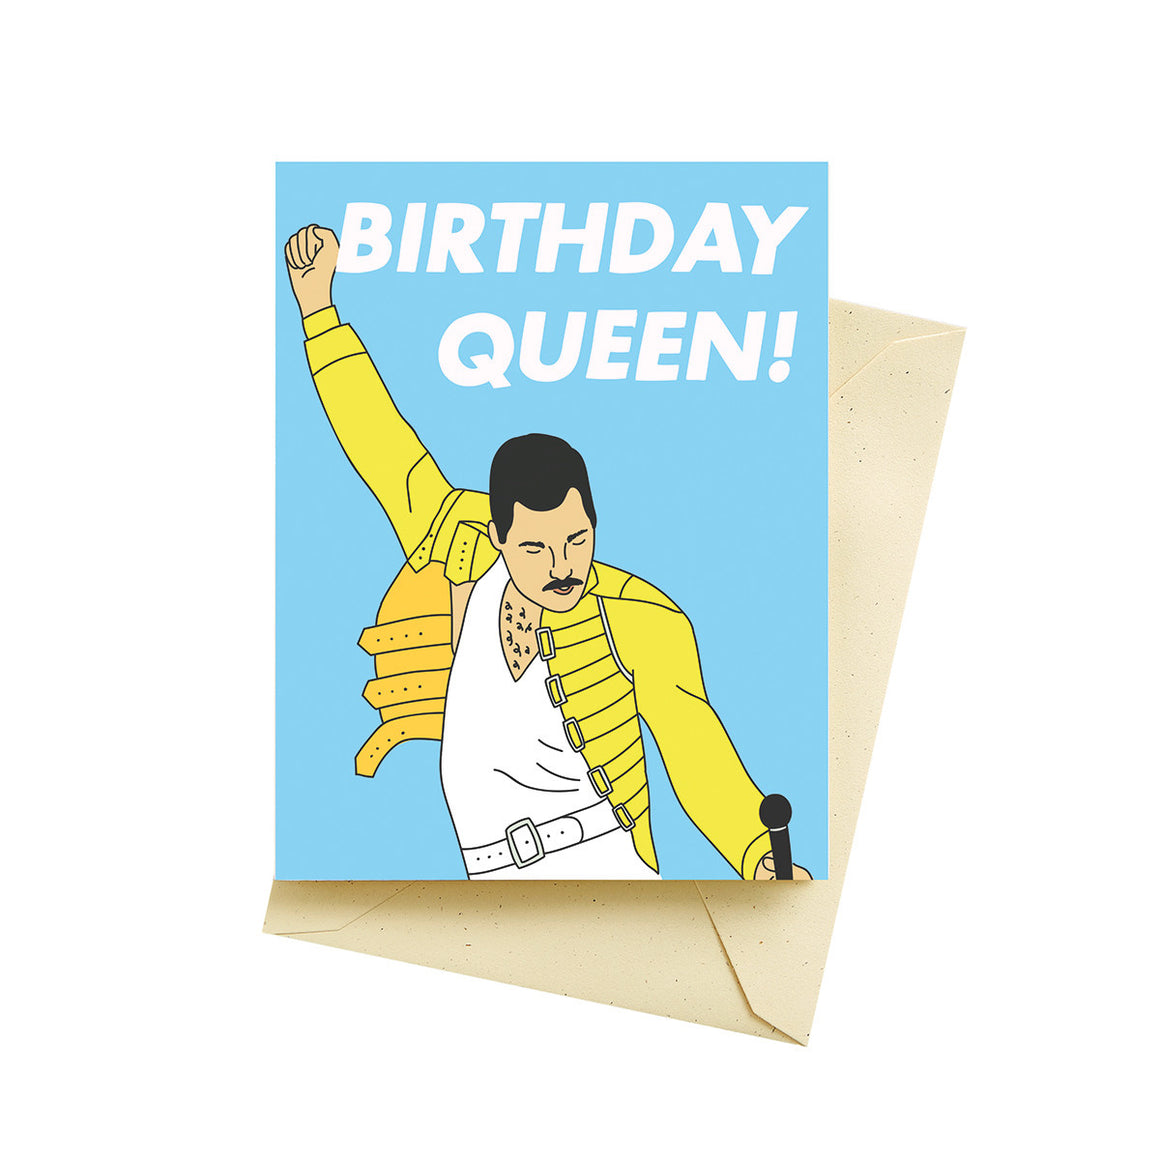 Birthday Queen - Greeting Card